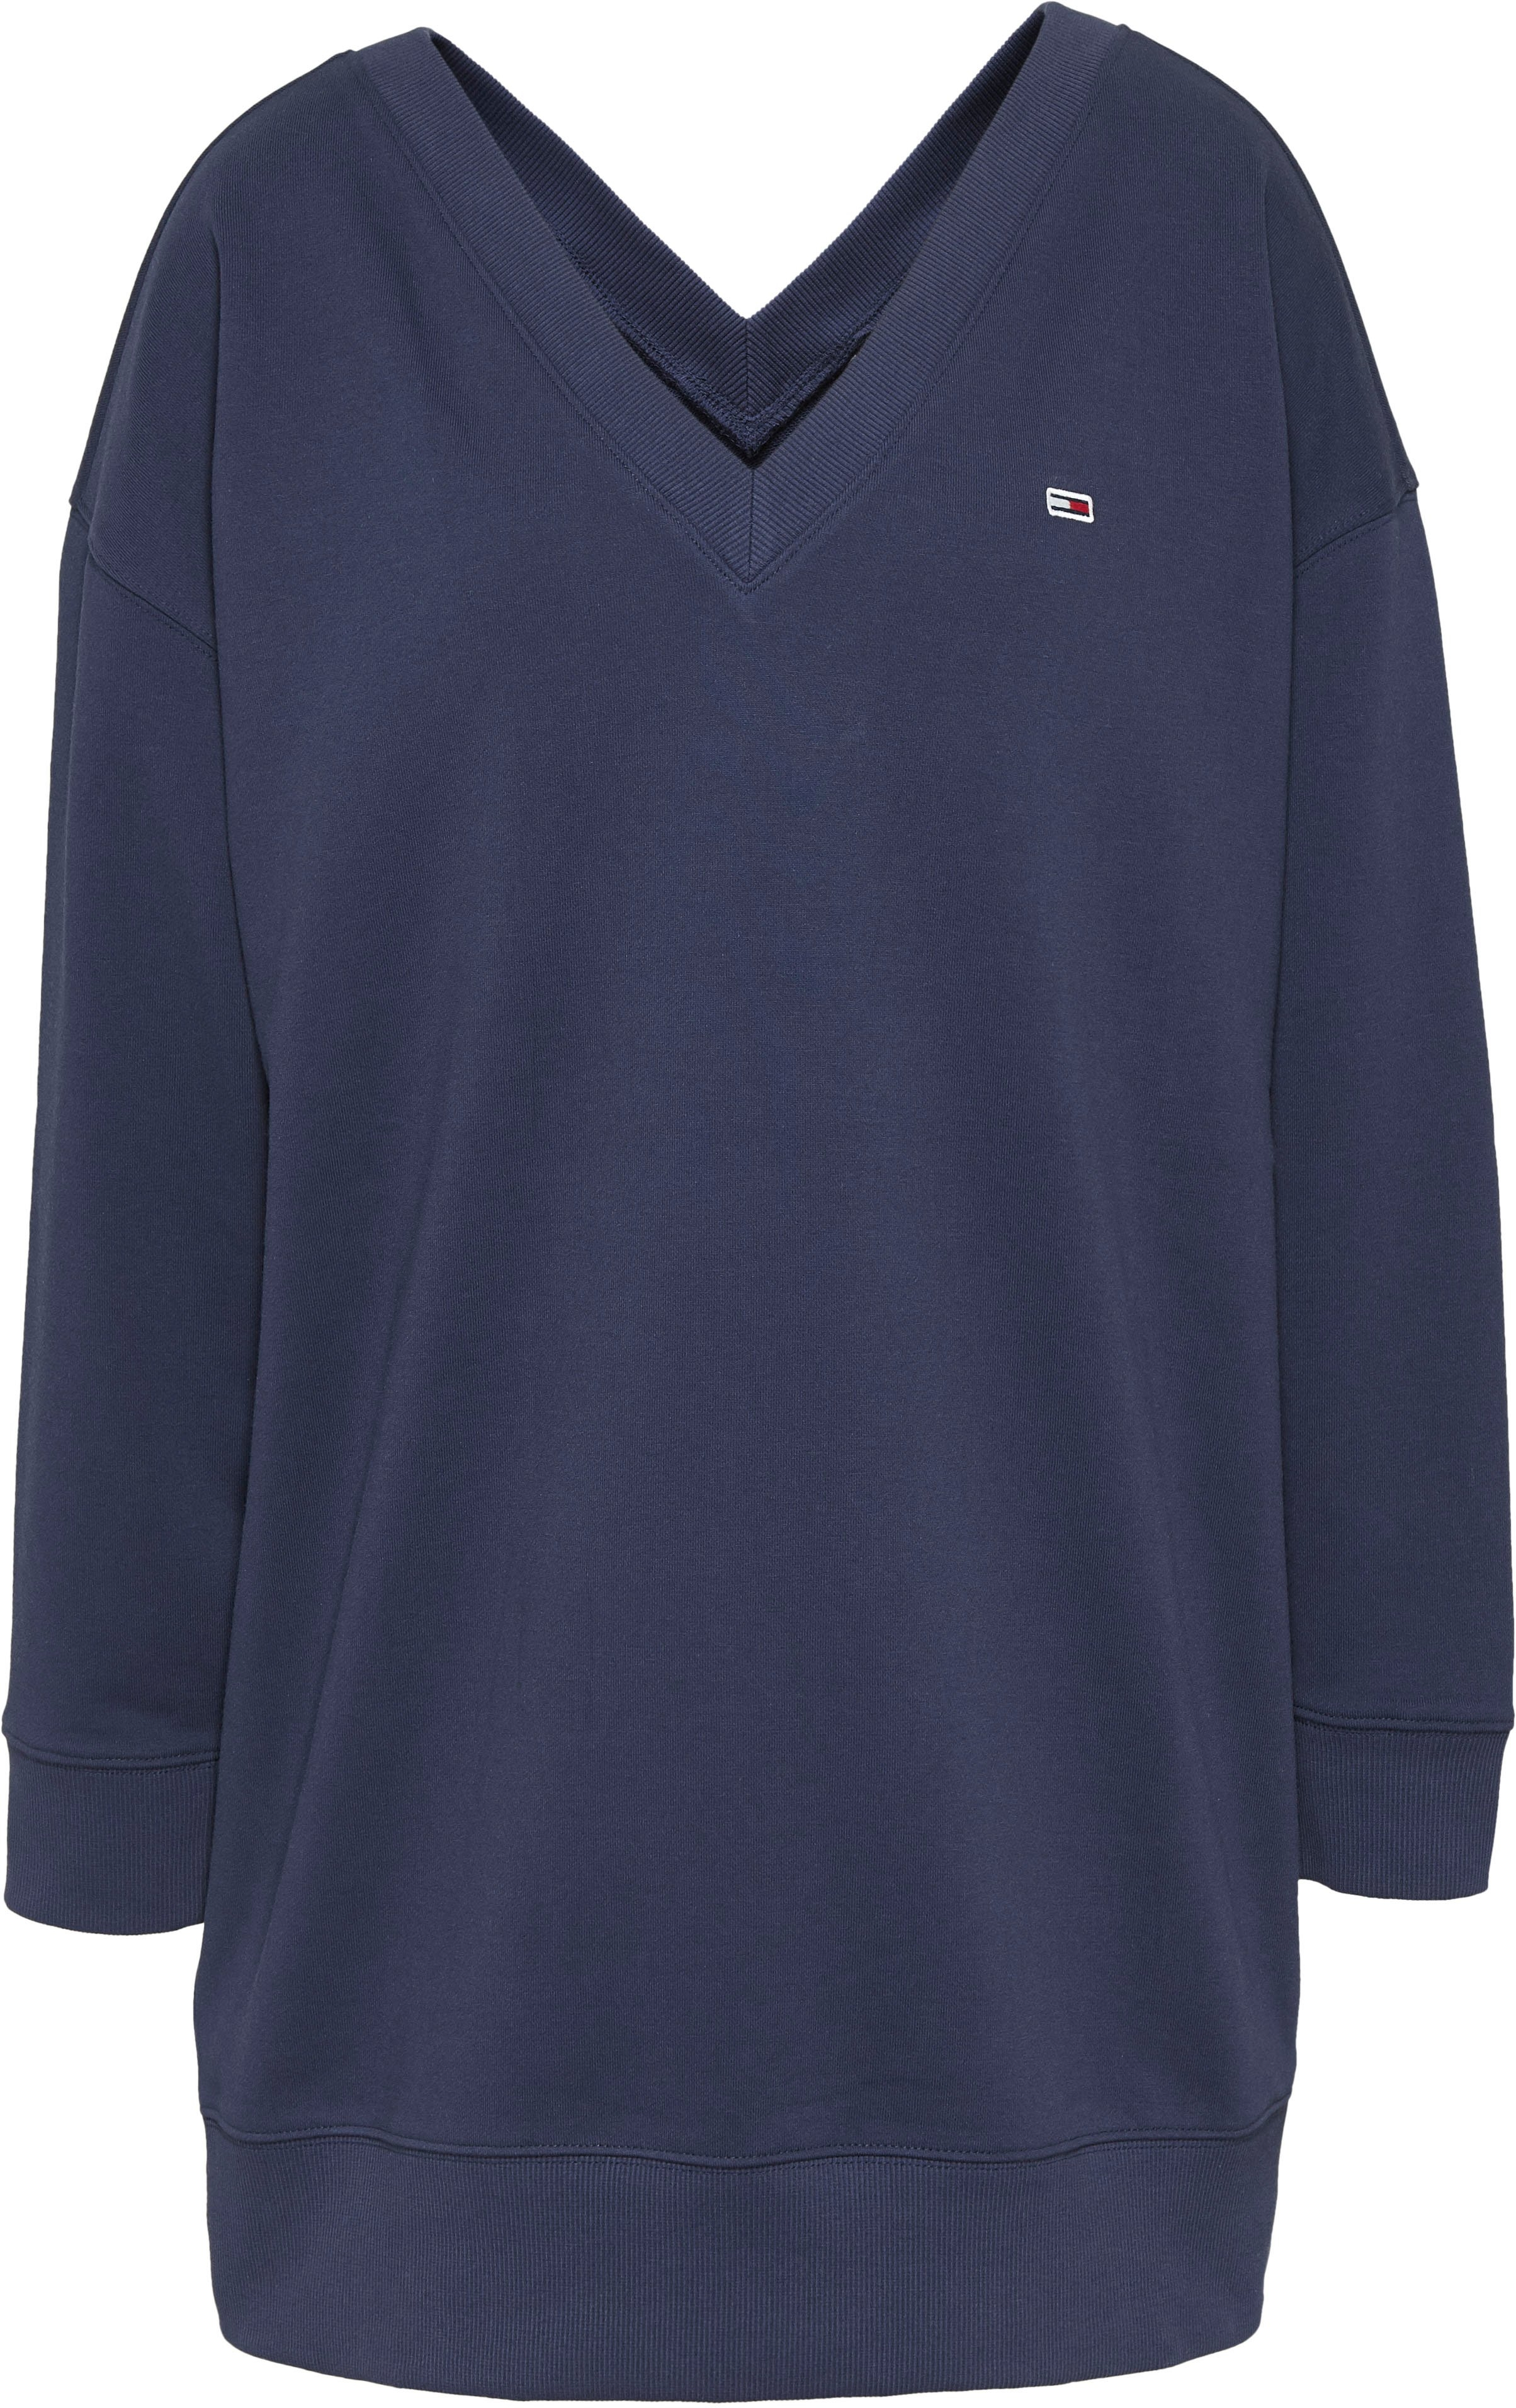 TOMMY JEANS sweatjurk »TJW V-NECK SWEAT DRESS« in de webshop van OTTO kopen